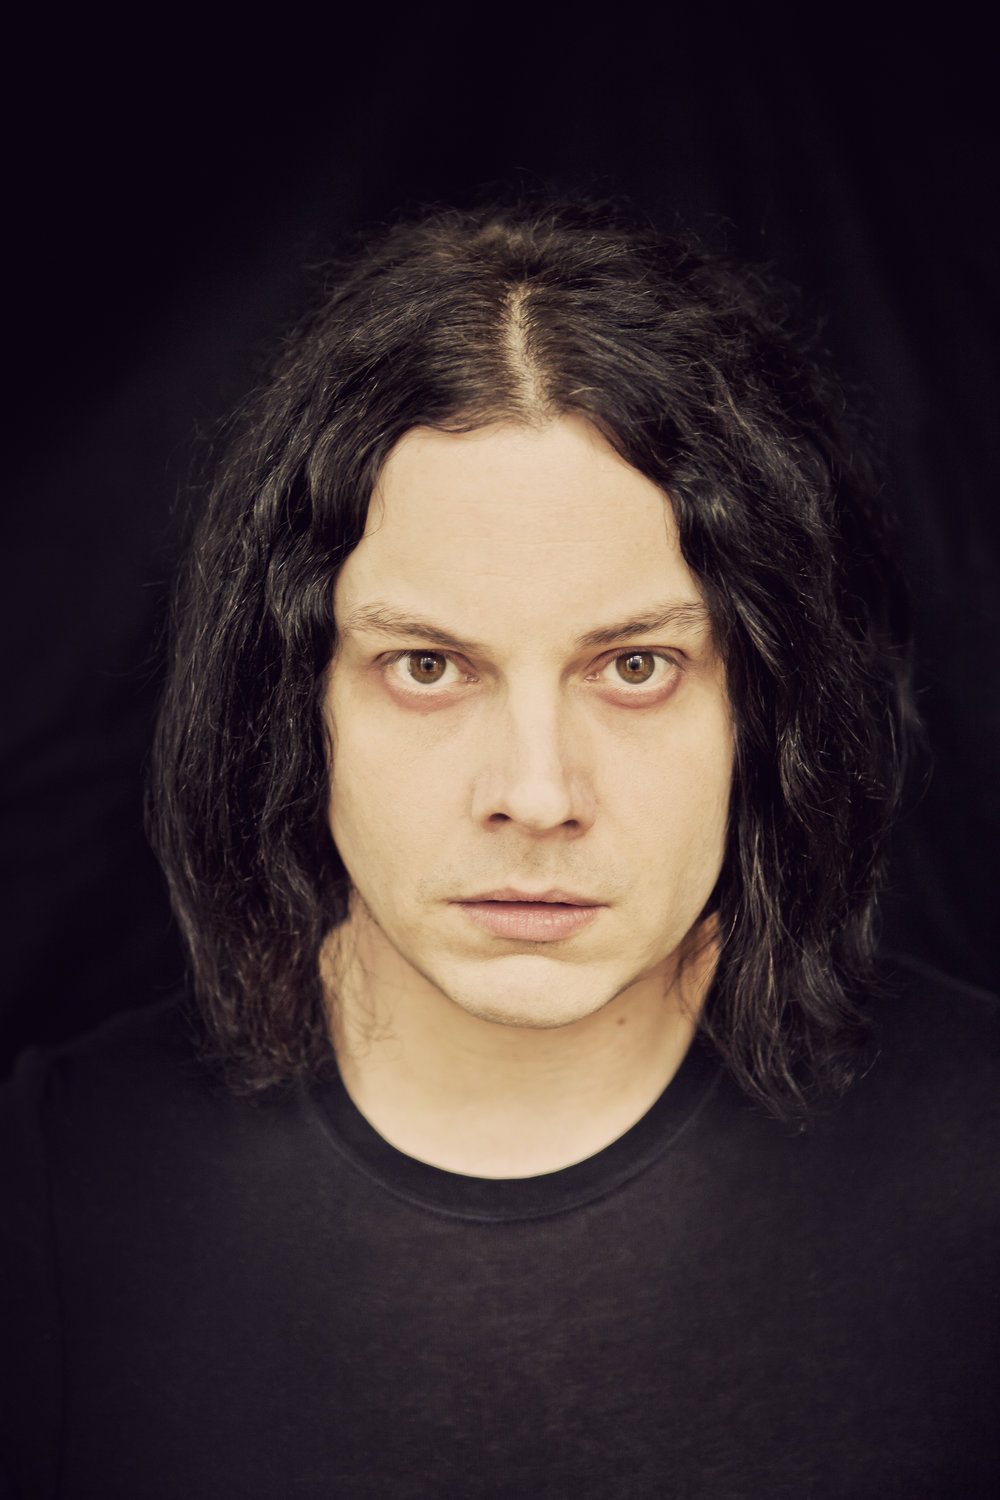 Jack White, New York City, 2012